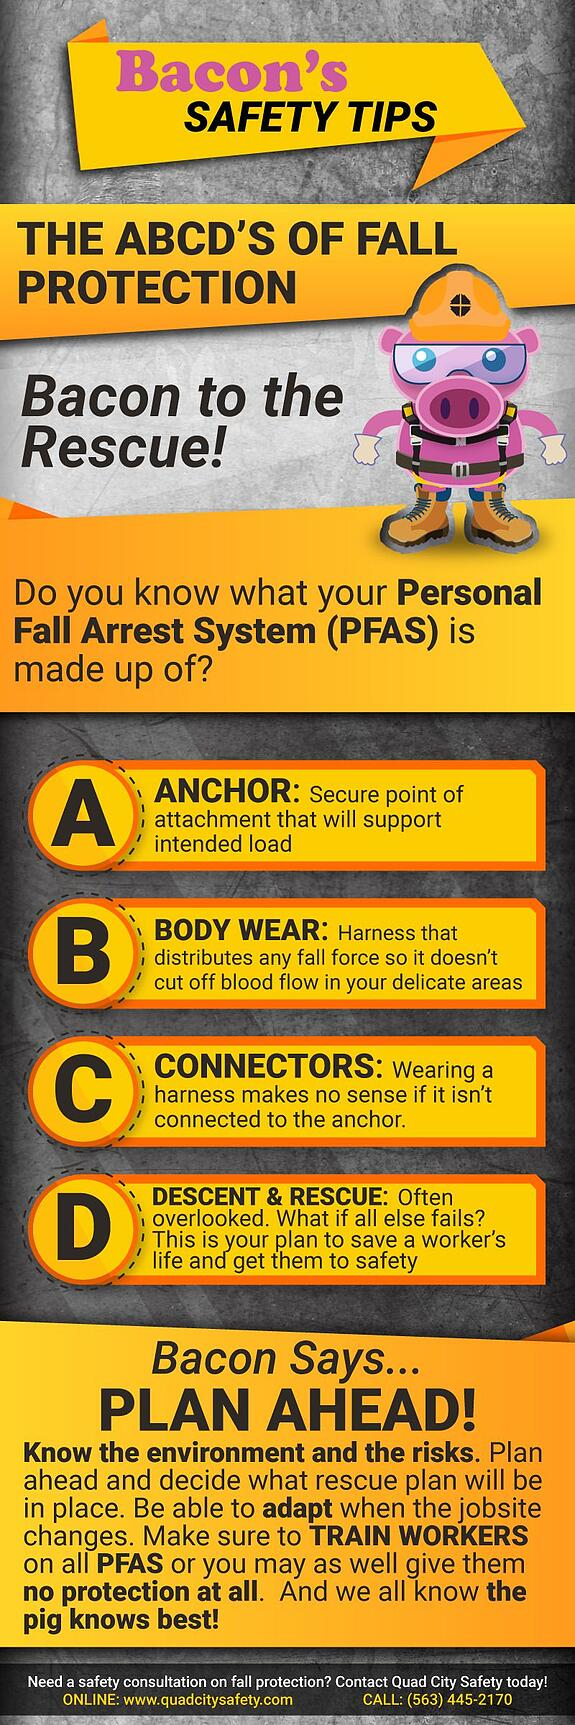 Bacon's Safety Tips The ABCD's of Fall Protection